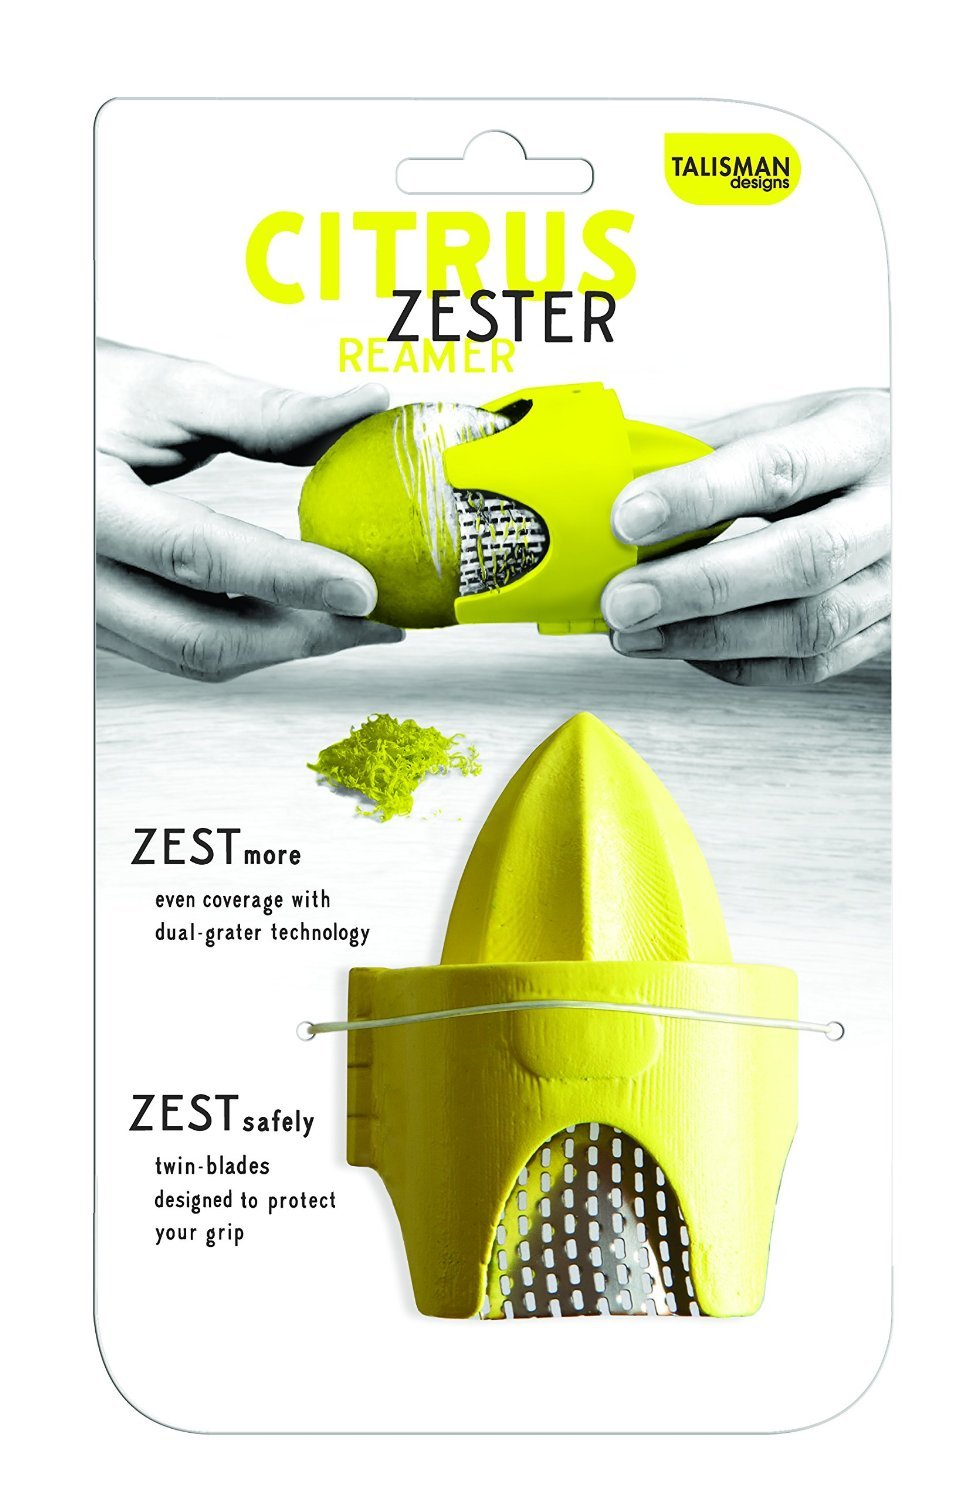 Talisman Designs 3115 Citrus Zester & Reamer, BPA-free Plastic and Stainless Steel